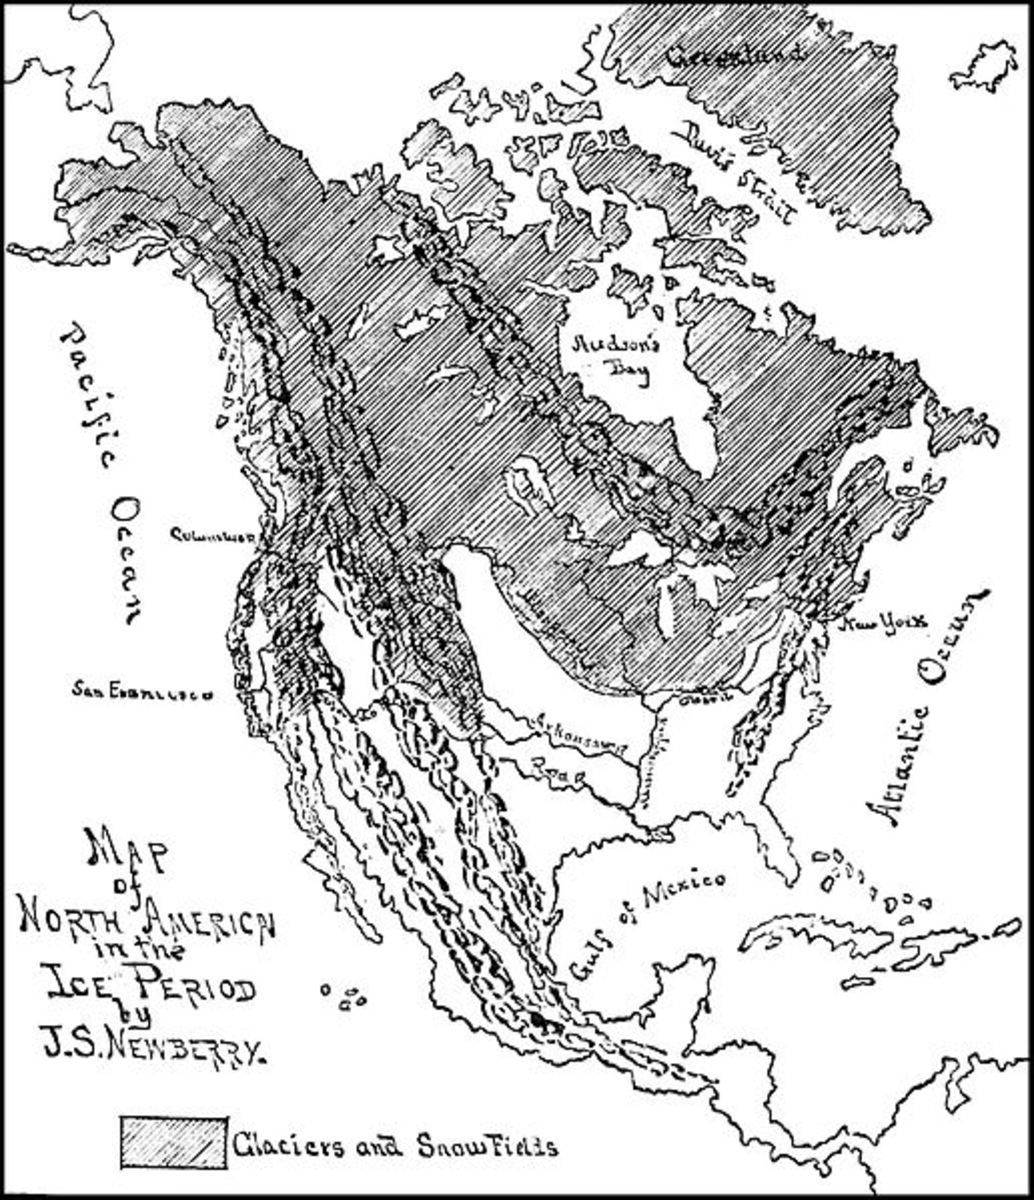 Popular Science's 1887 map of Ice Age North America.